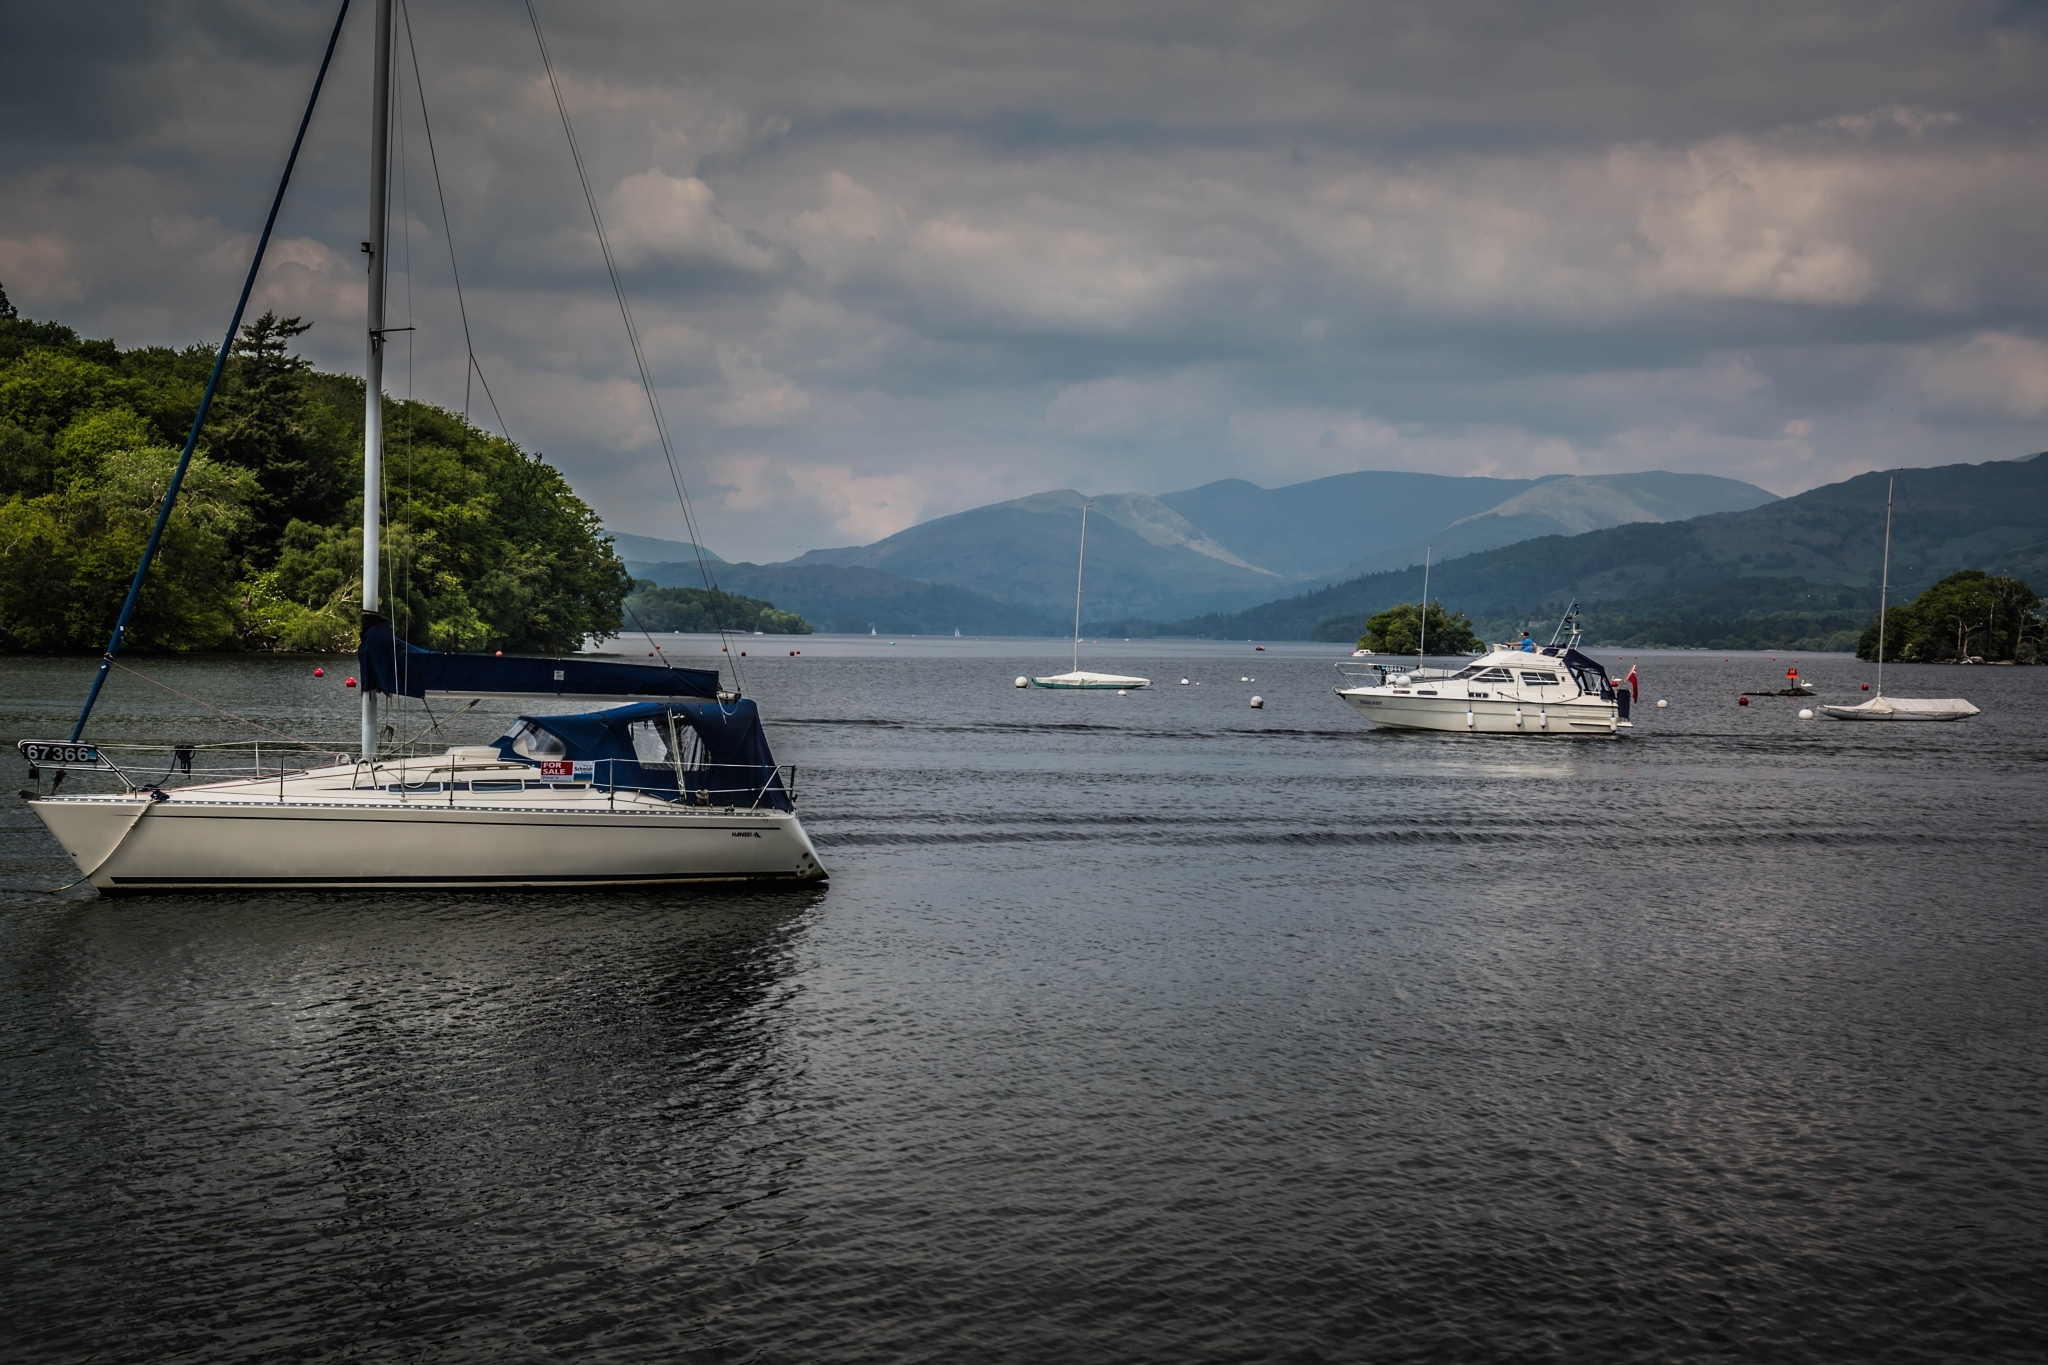 Bowness, Lake Windermere, Cumbria by Neil Wallis